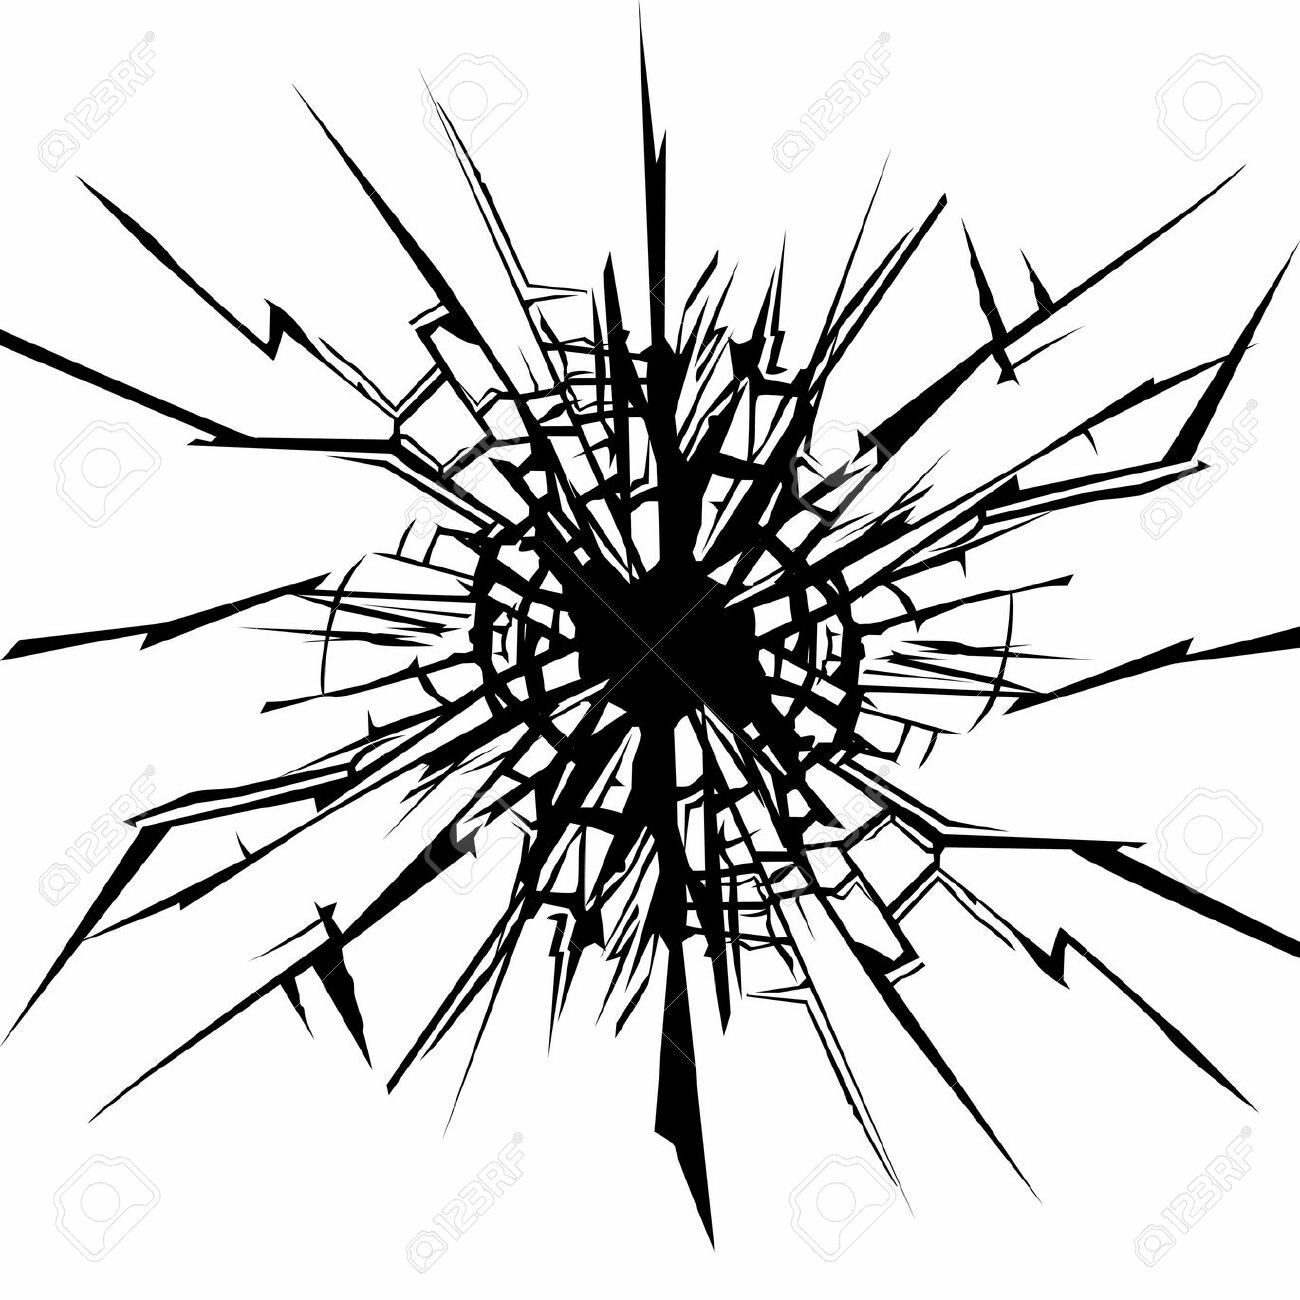 Clipart Cracked Mirror In